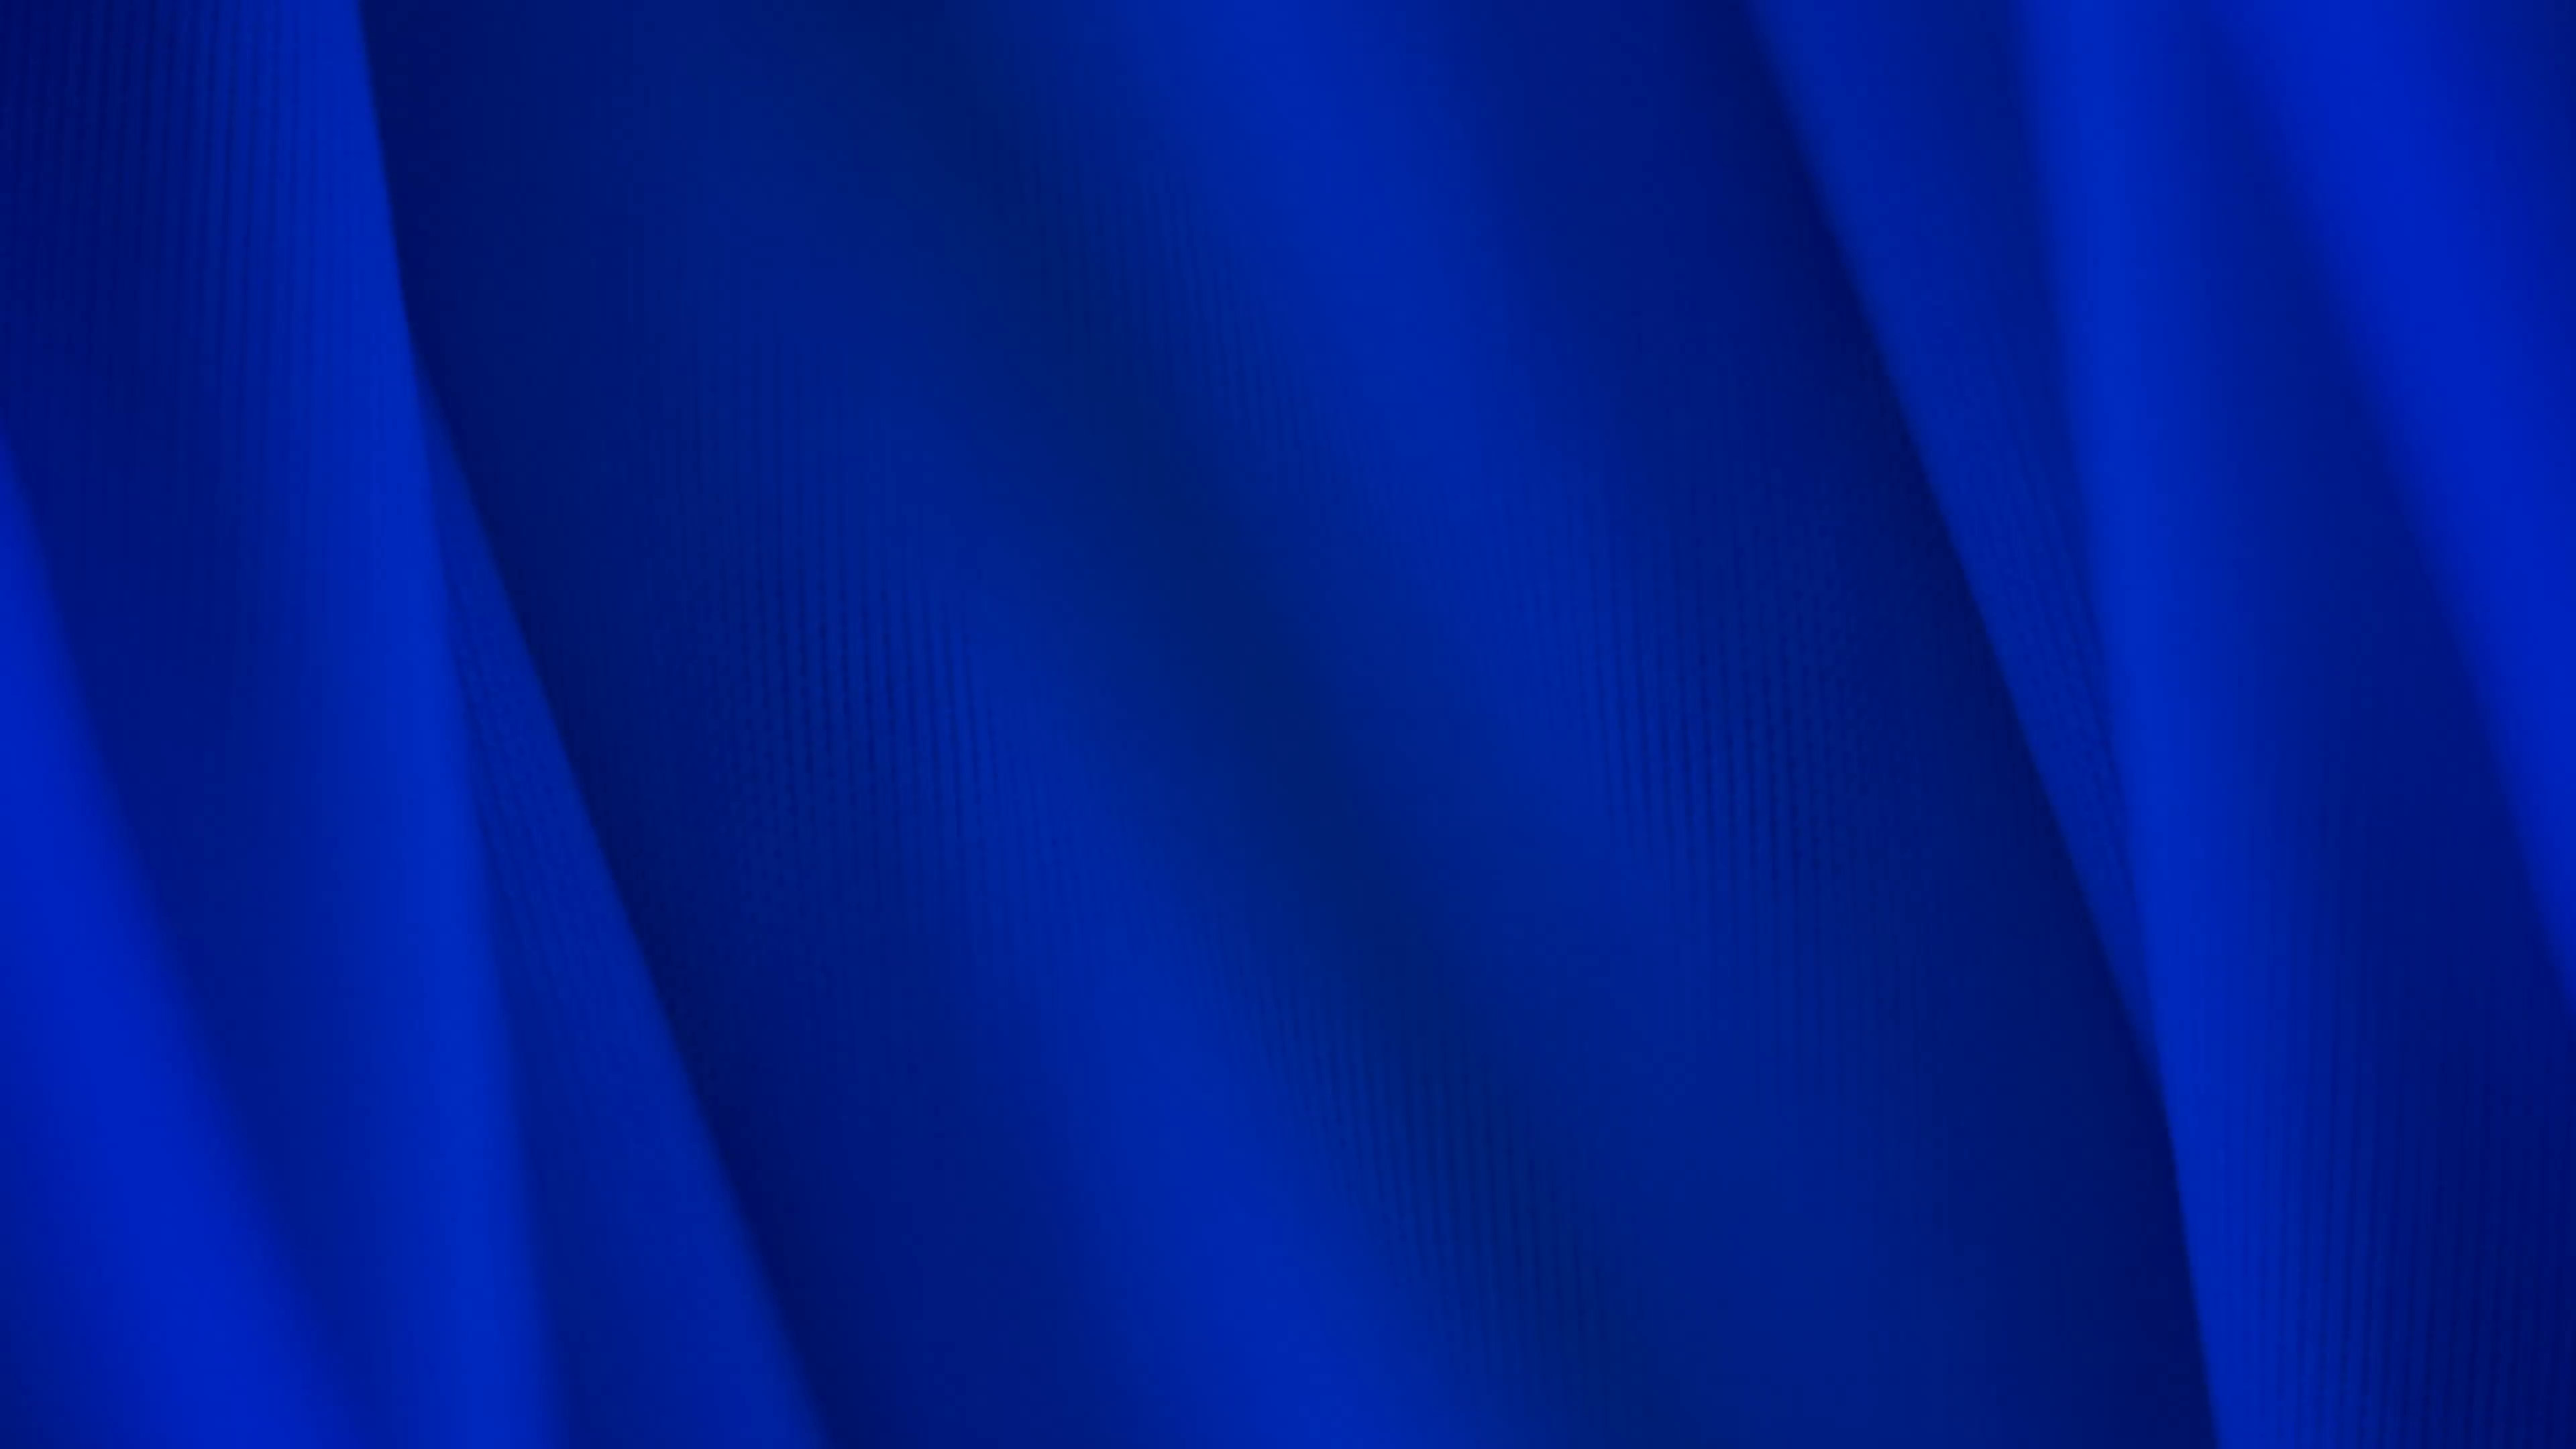 dark-blue-background-4k_ekeftjj9ml__F0000